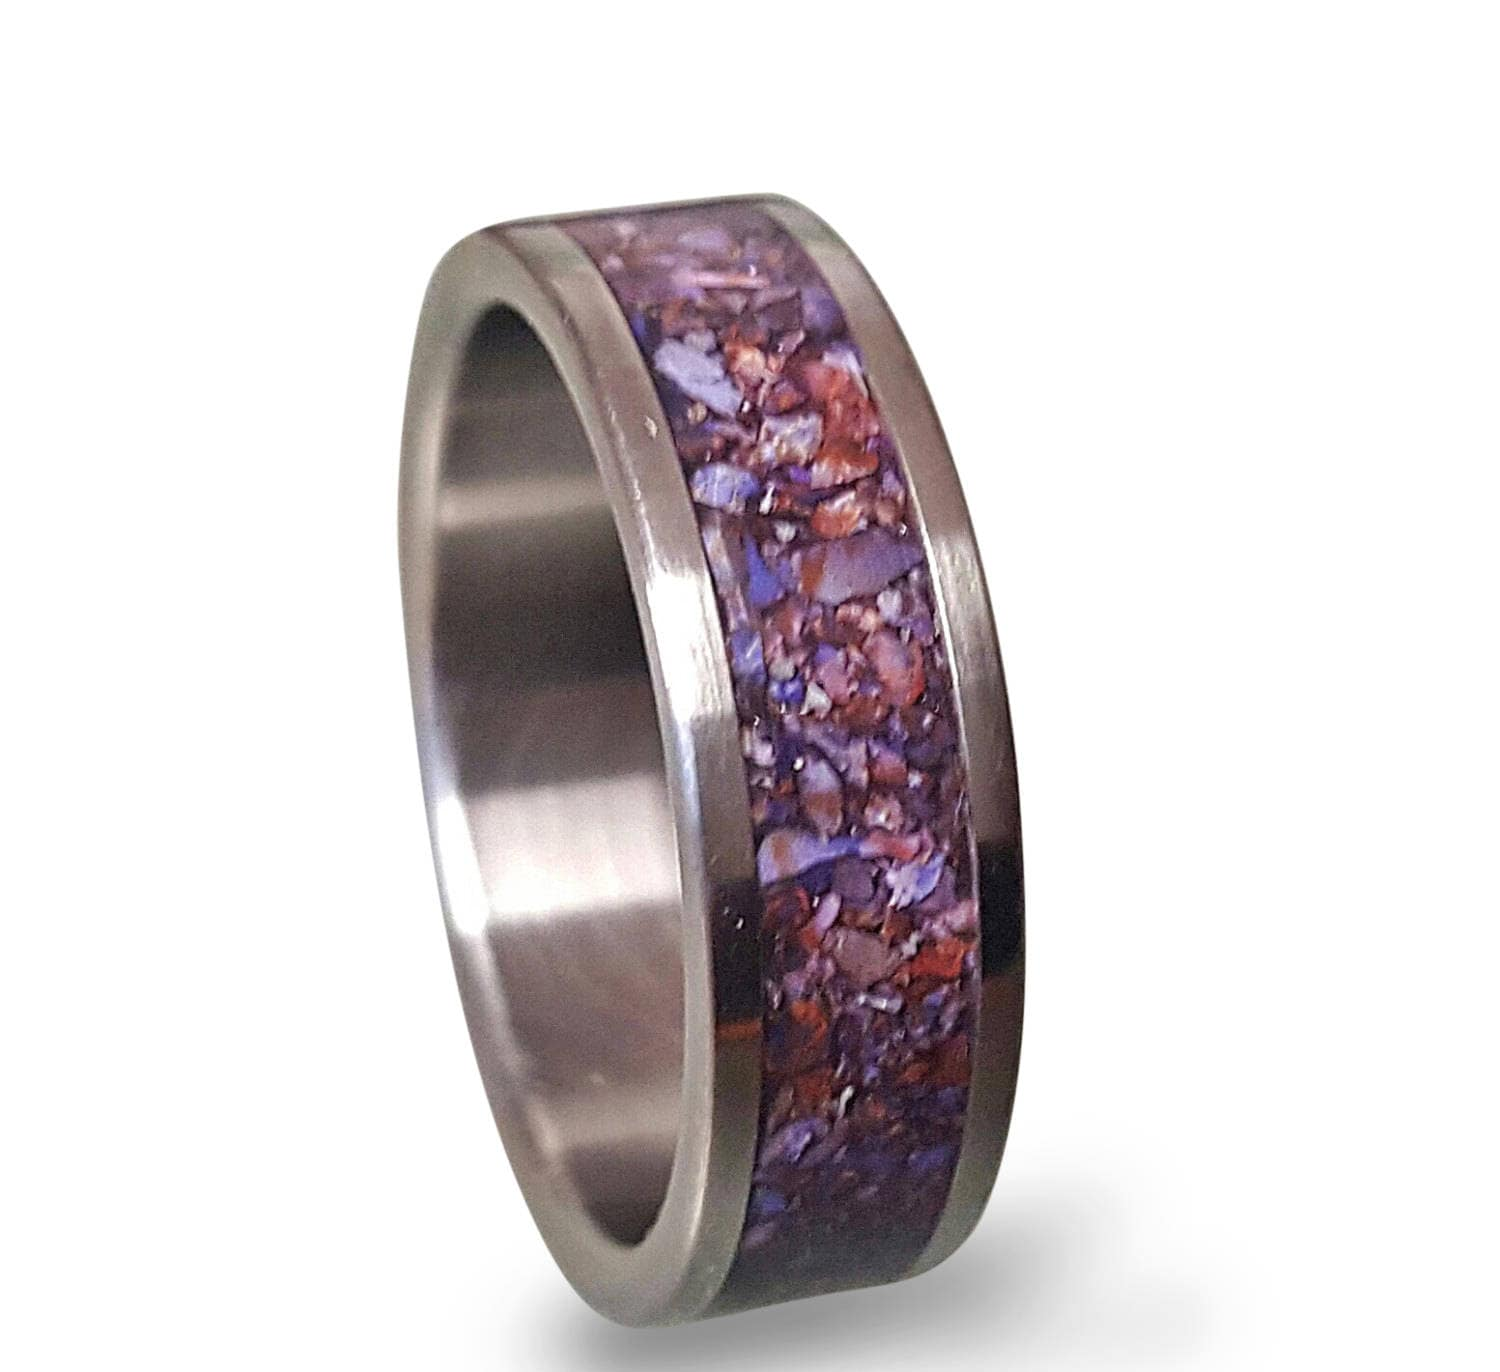 Crushed Amethyst Inlay : Titanium ring with crushed amethyst inlay purple